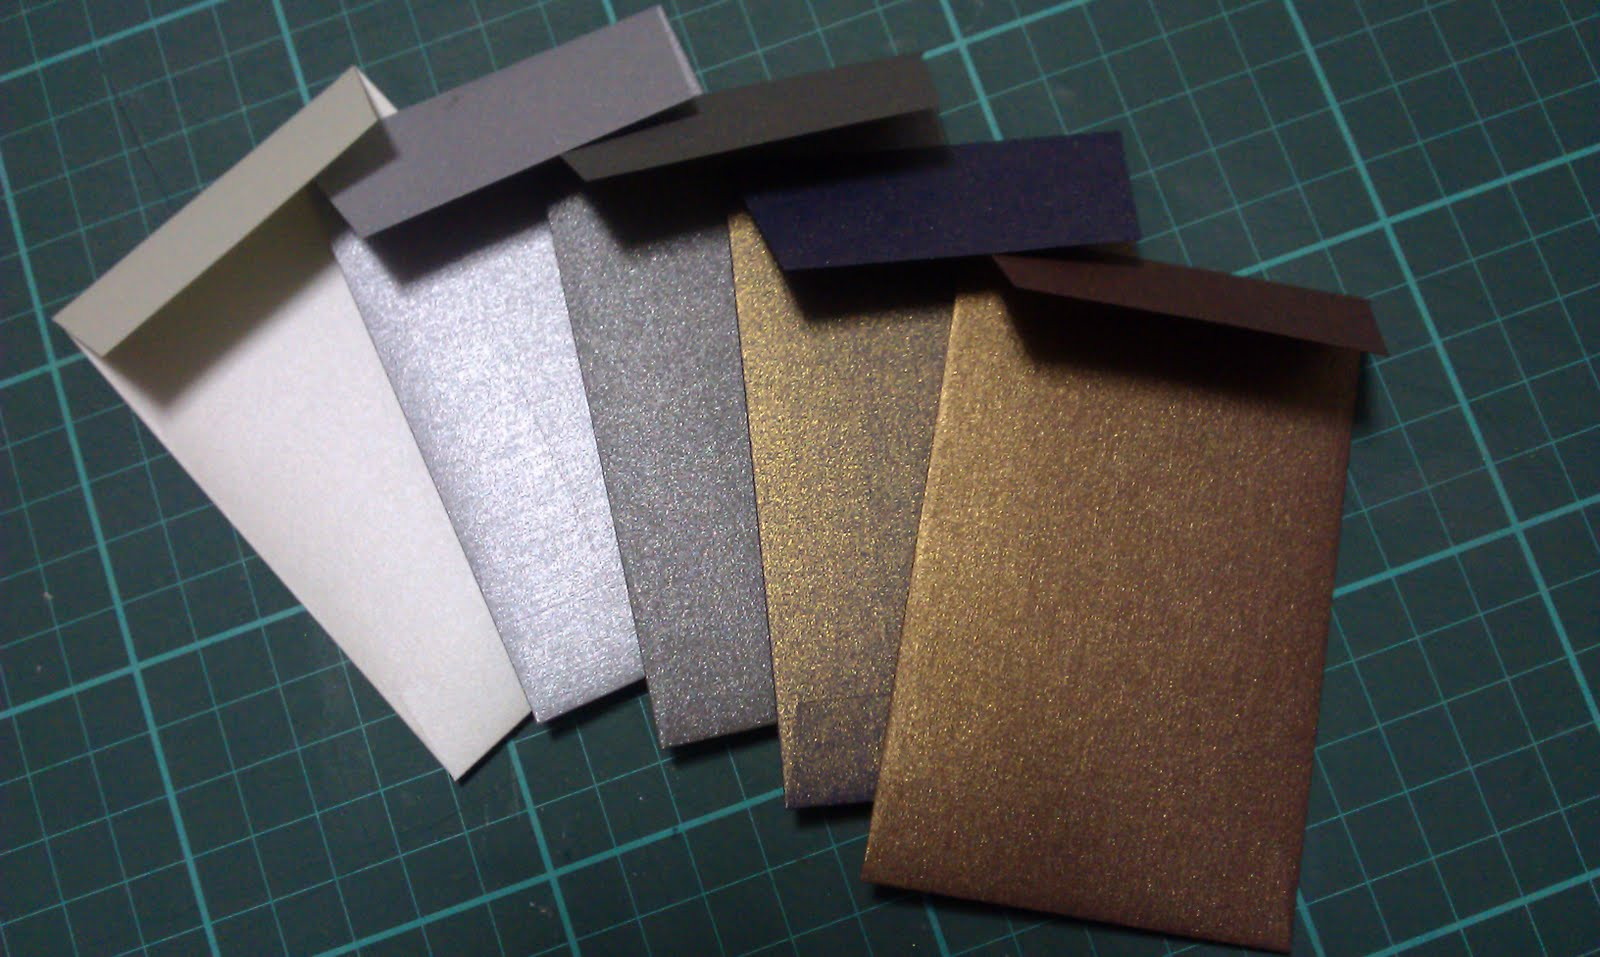 Scrapbook paper envelope - Do You Have A Preferred Envelope Template You Use Did You Purchase Your Template Or Is It One You Made Altered Yourself